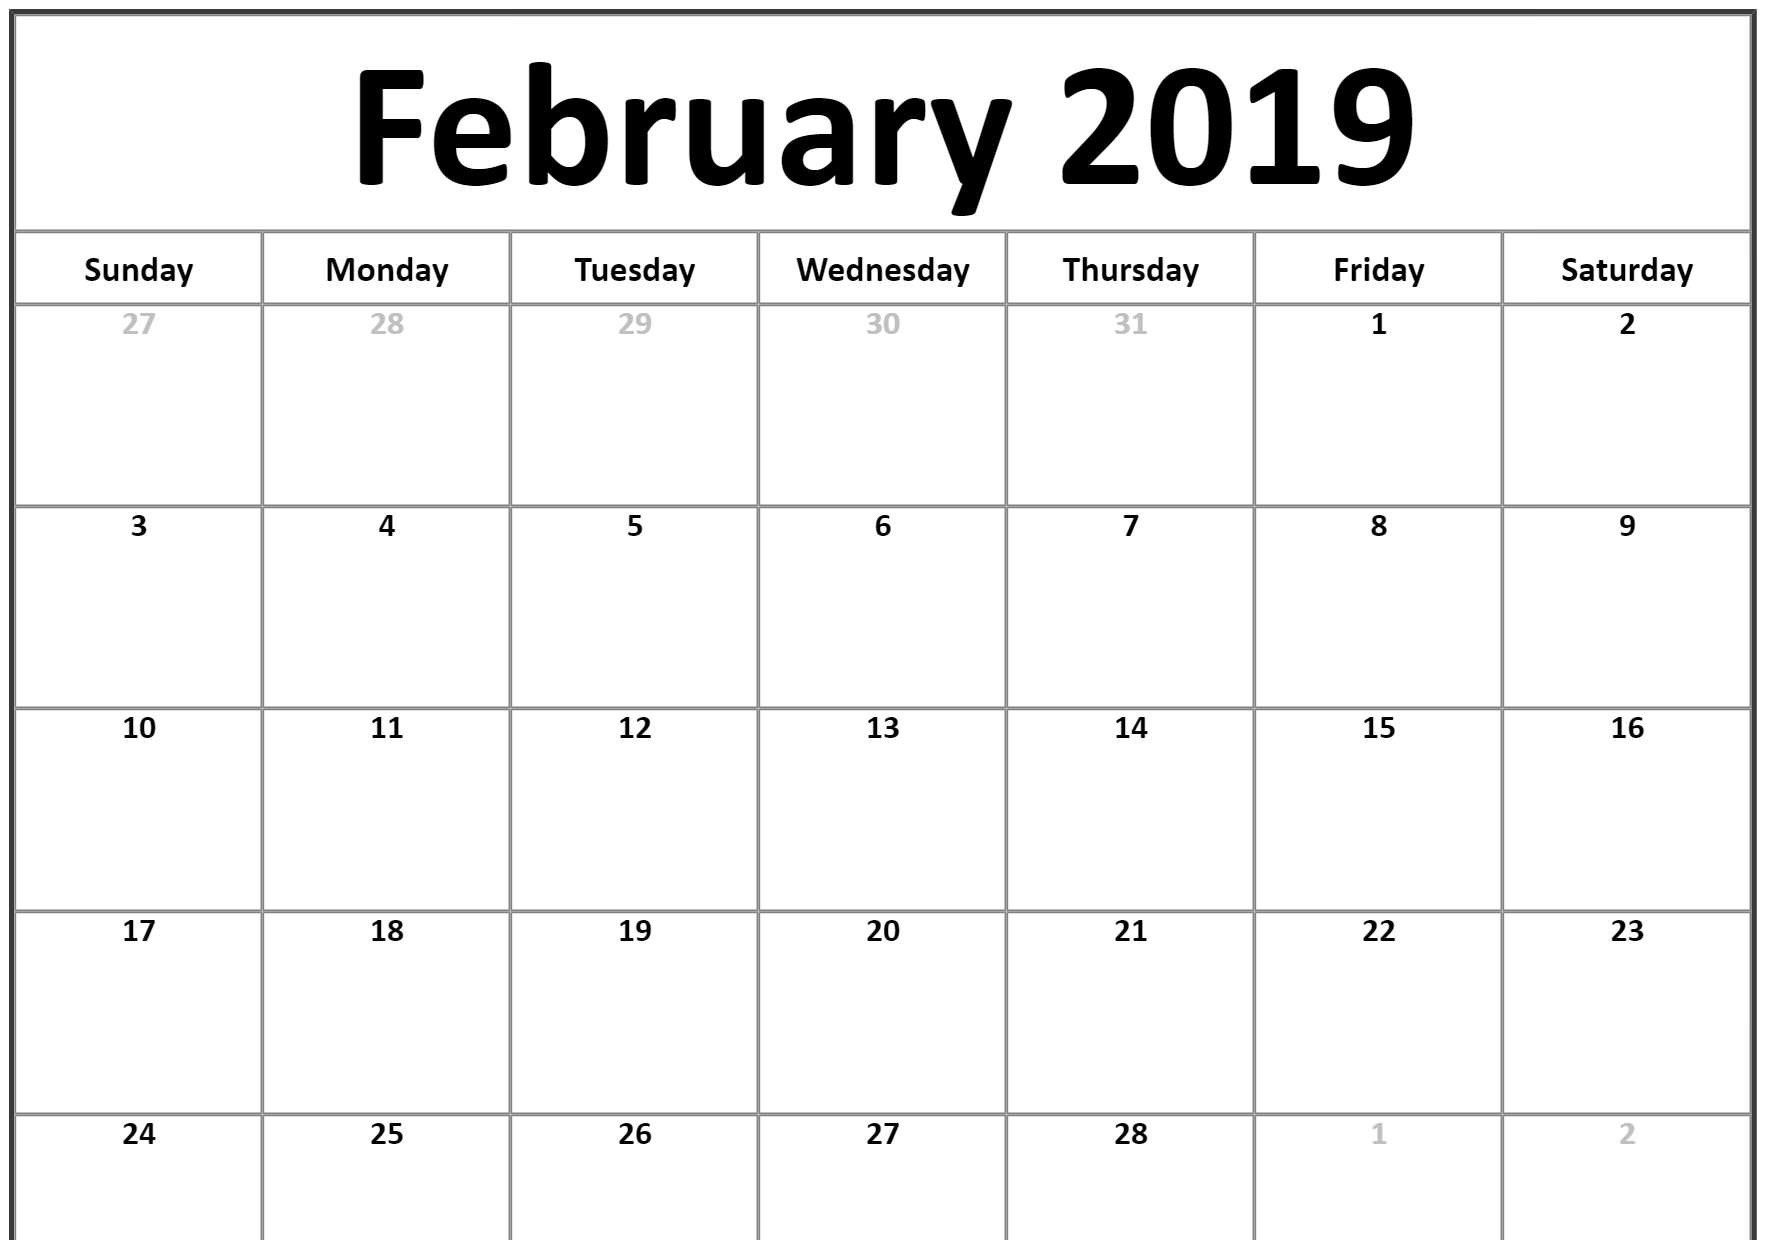 February Calendar Templates 2019 Small 2019 February Printable calendar #landscape | February 2019